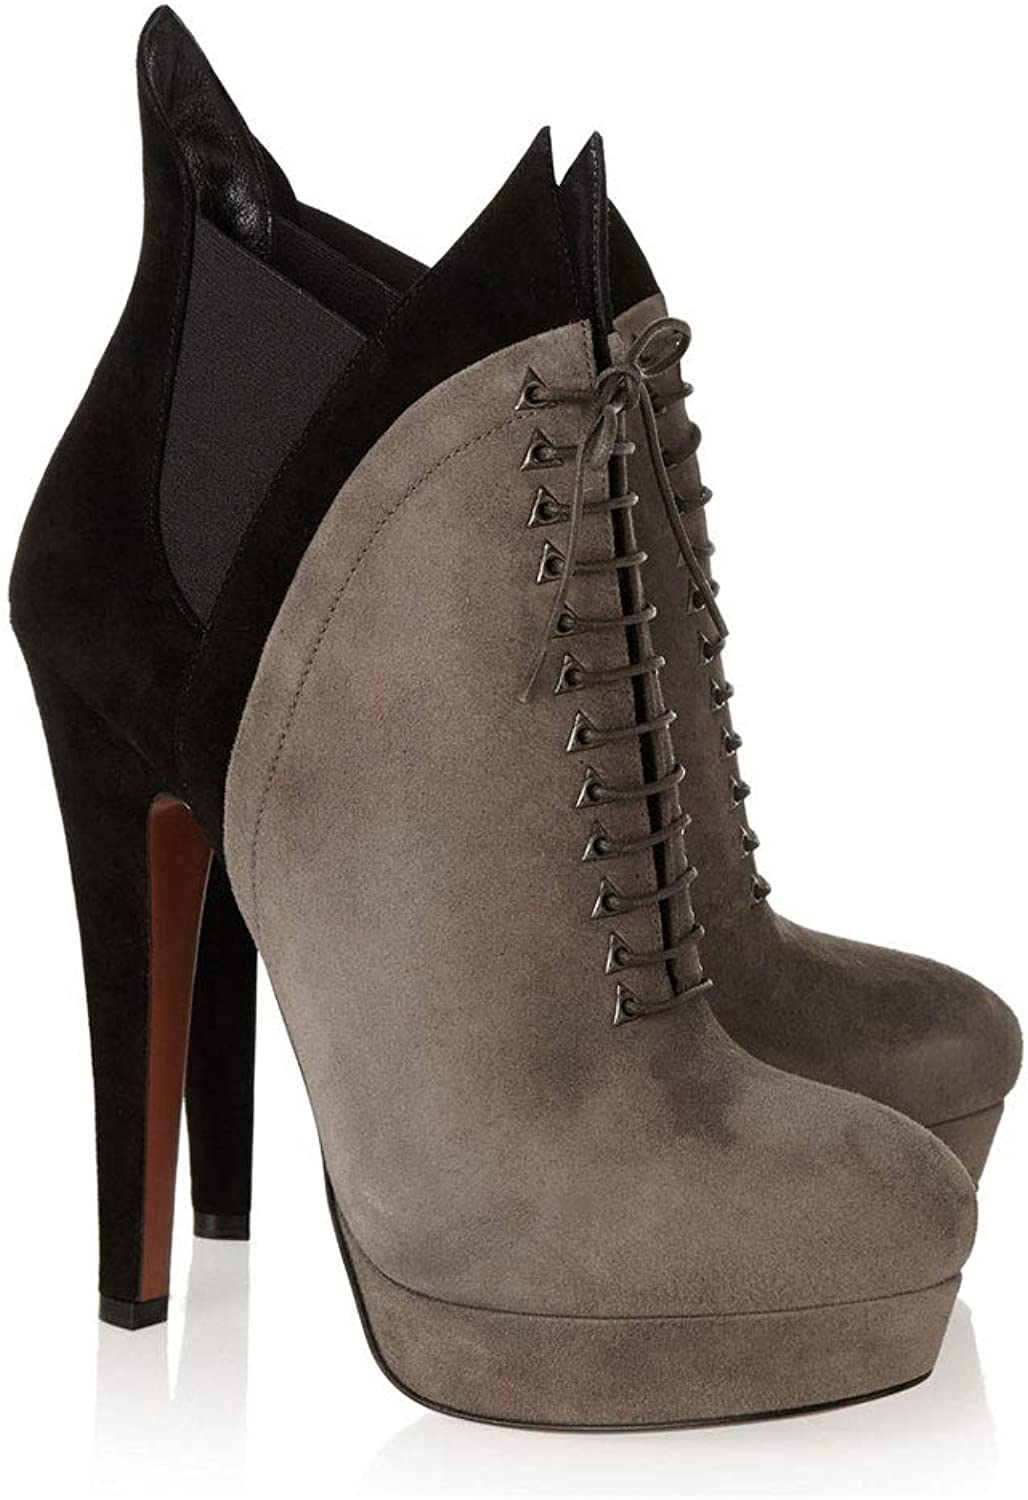 High-Heeled Ankle Boots with Waterproof Platform Boots Spring and Autumn and Winter Round Head Women's Boots